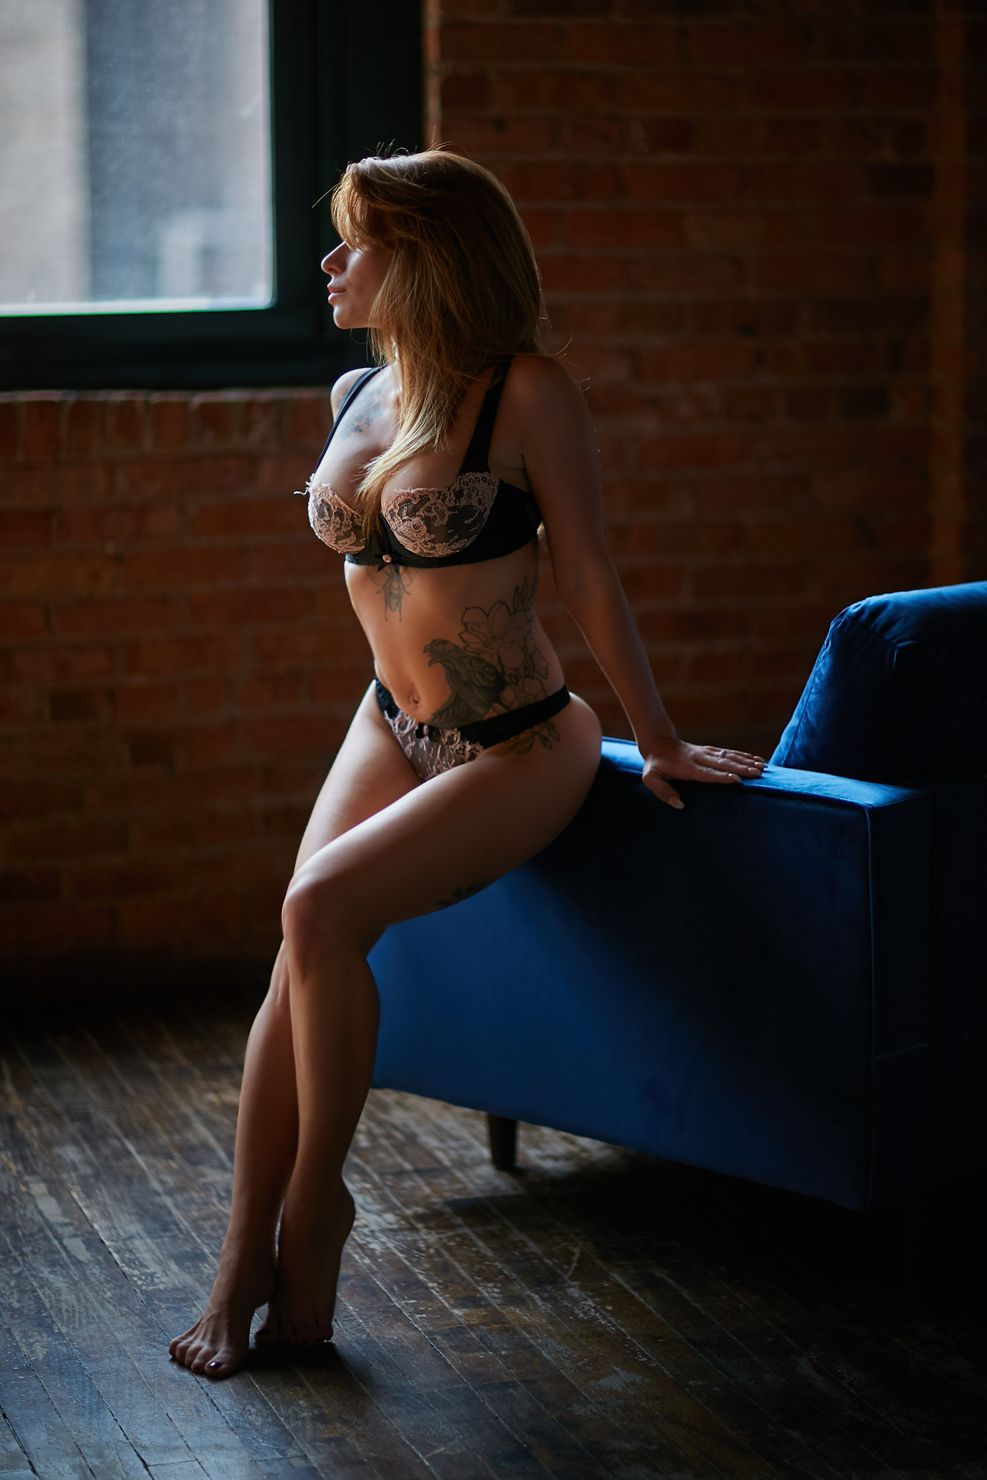 classy elegant sexy boudoir chicago - Chicago Fitness Boudoir. Another reveal of intimate photography.